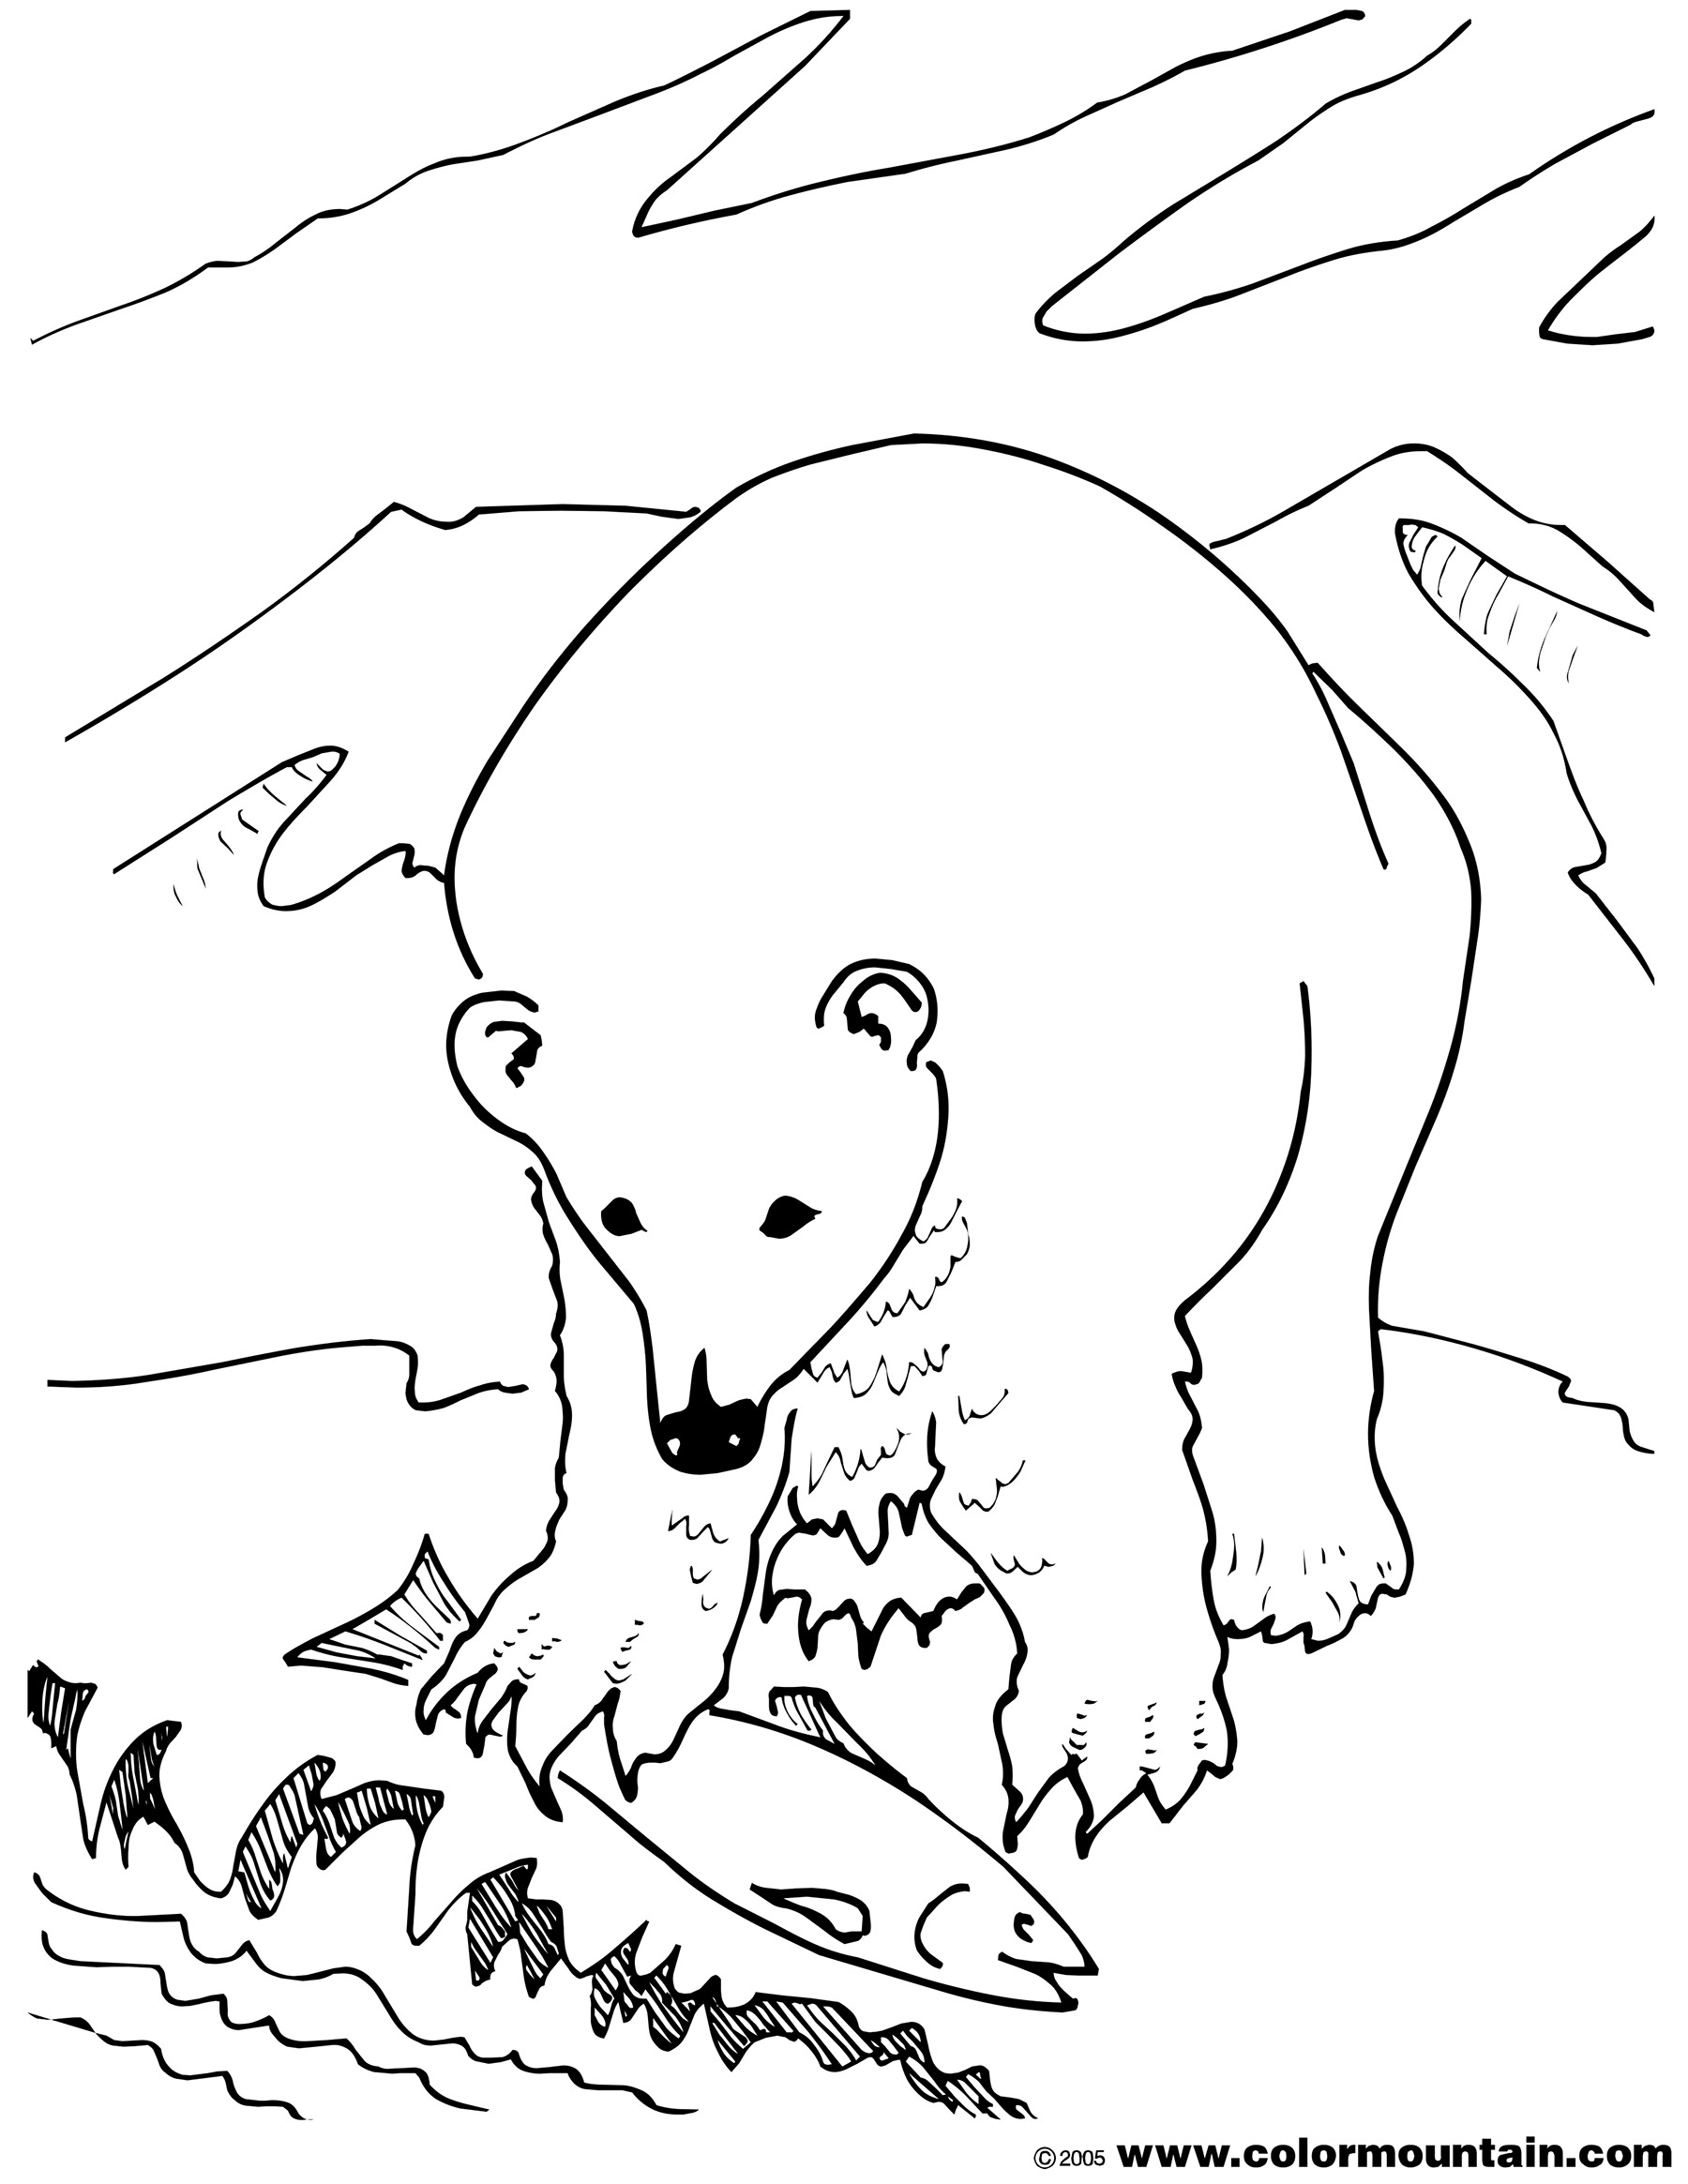 Grizzly bear head drawing at free for for Bear head coloring page